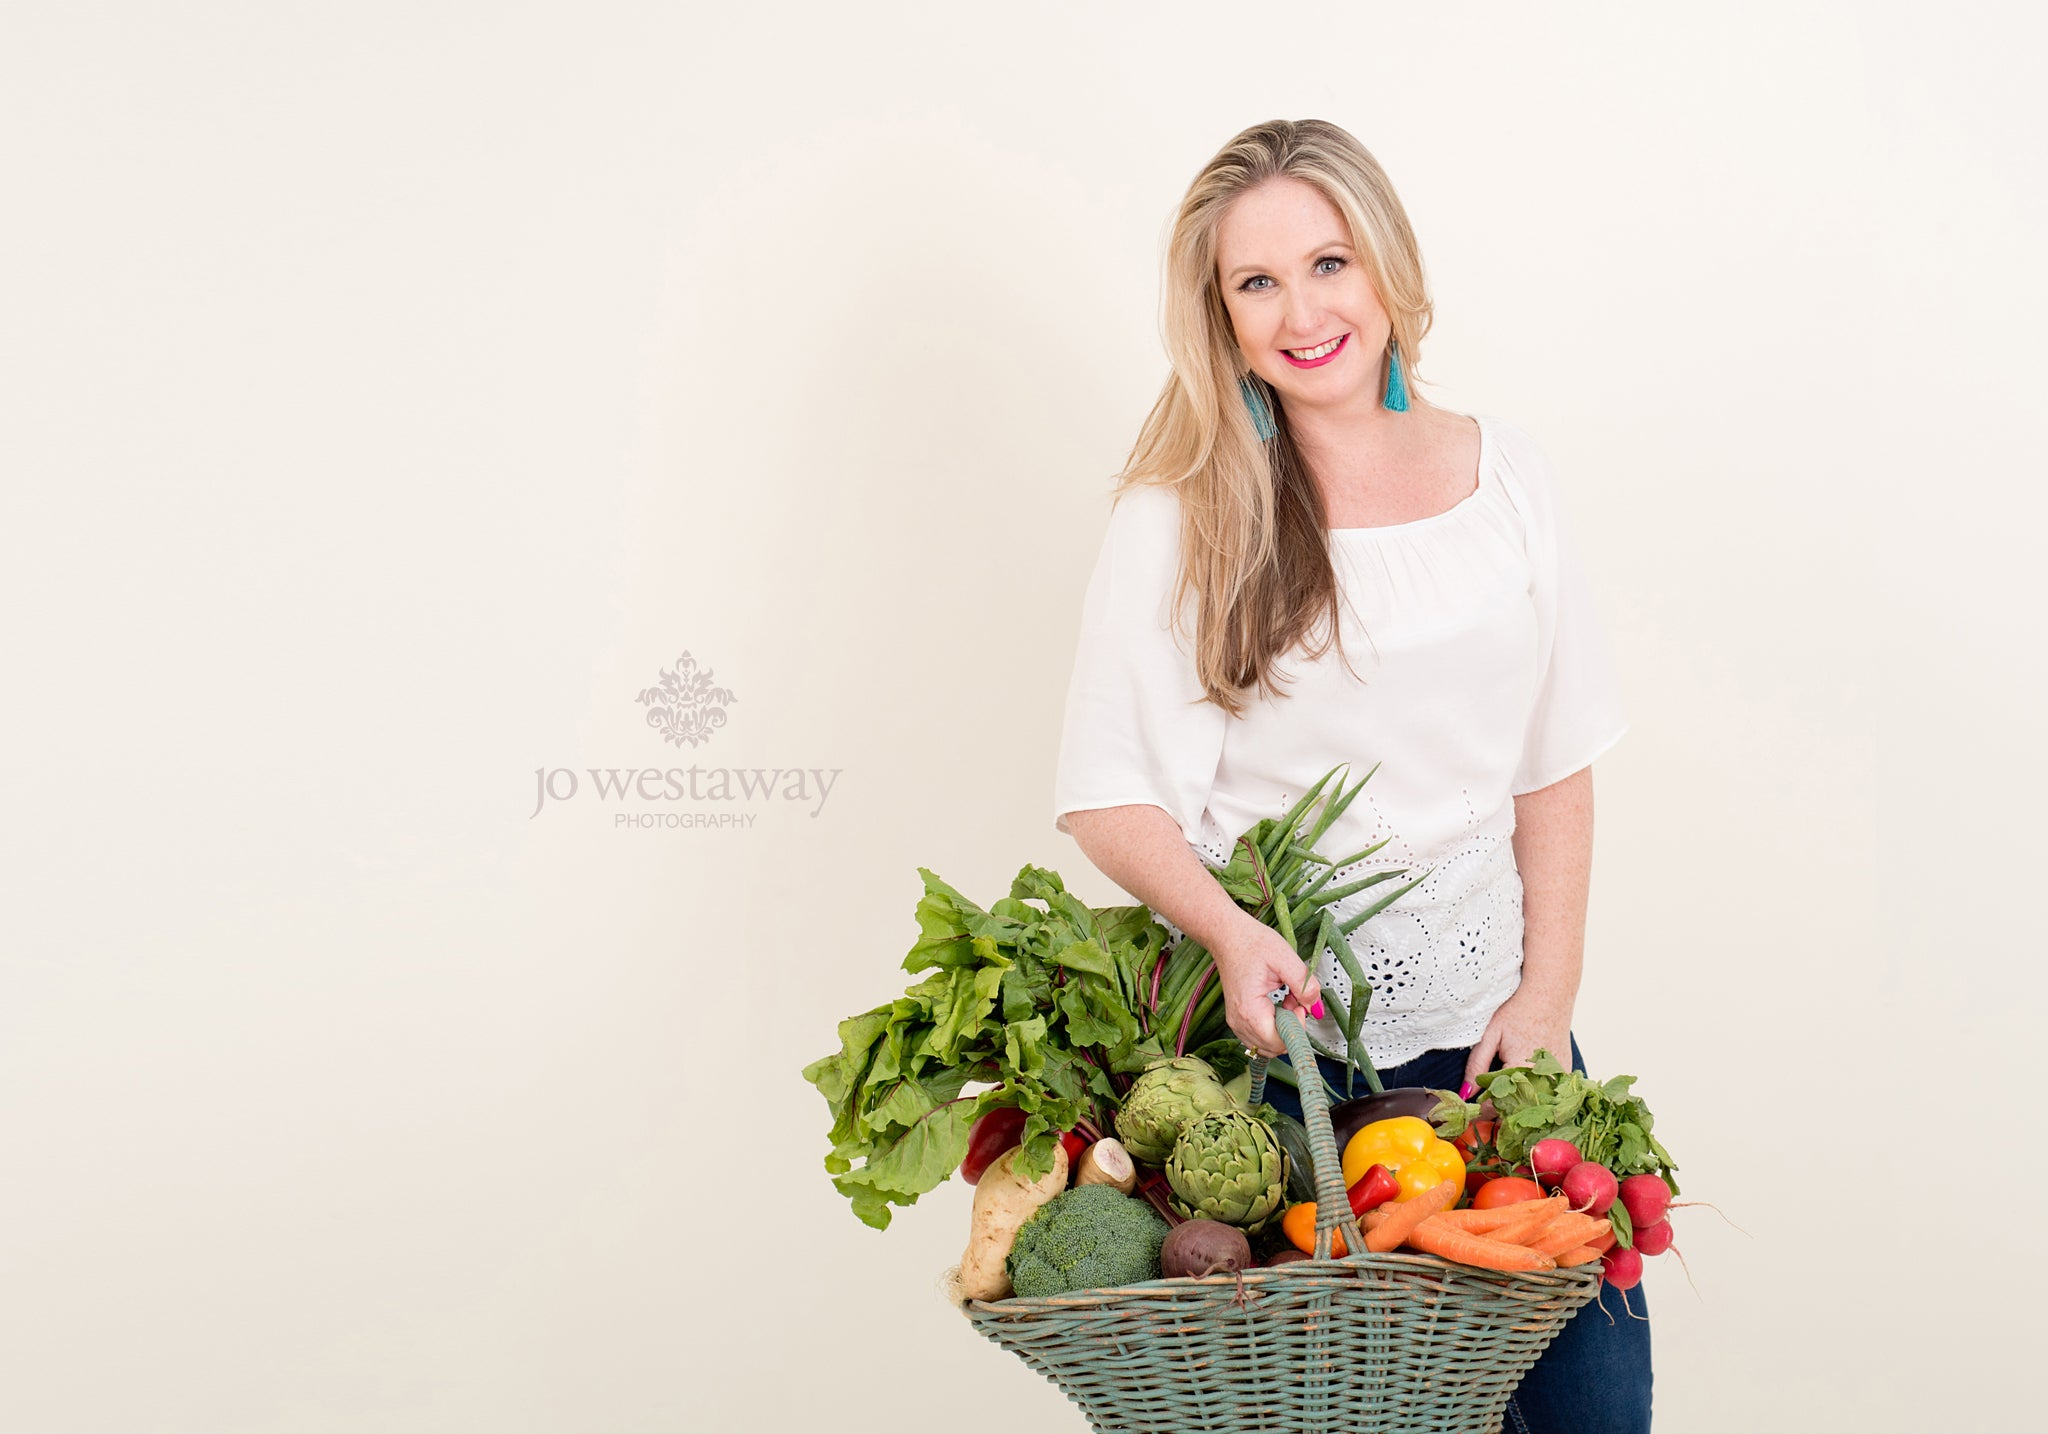 Nutritionist headshots and personal brand photos - Brisbane photographer